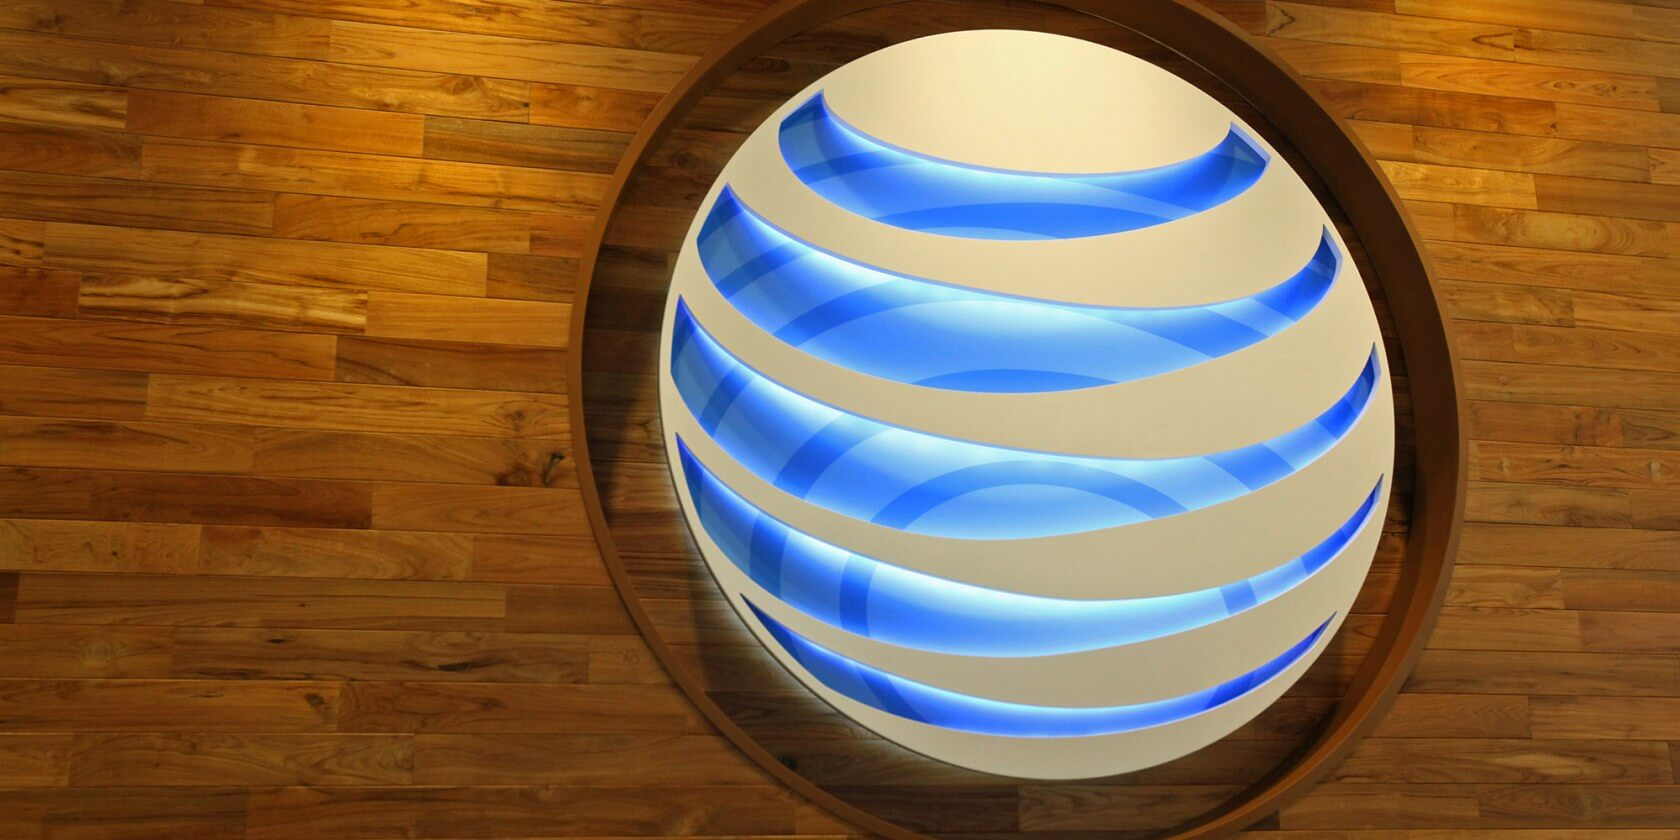 AT&T Claims it will Stop Selling Your Location Data